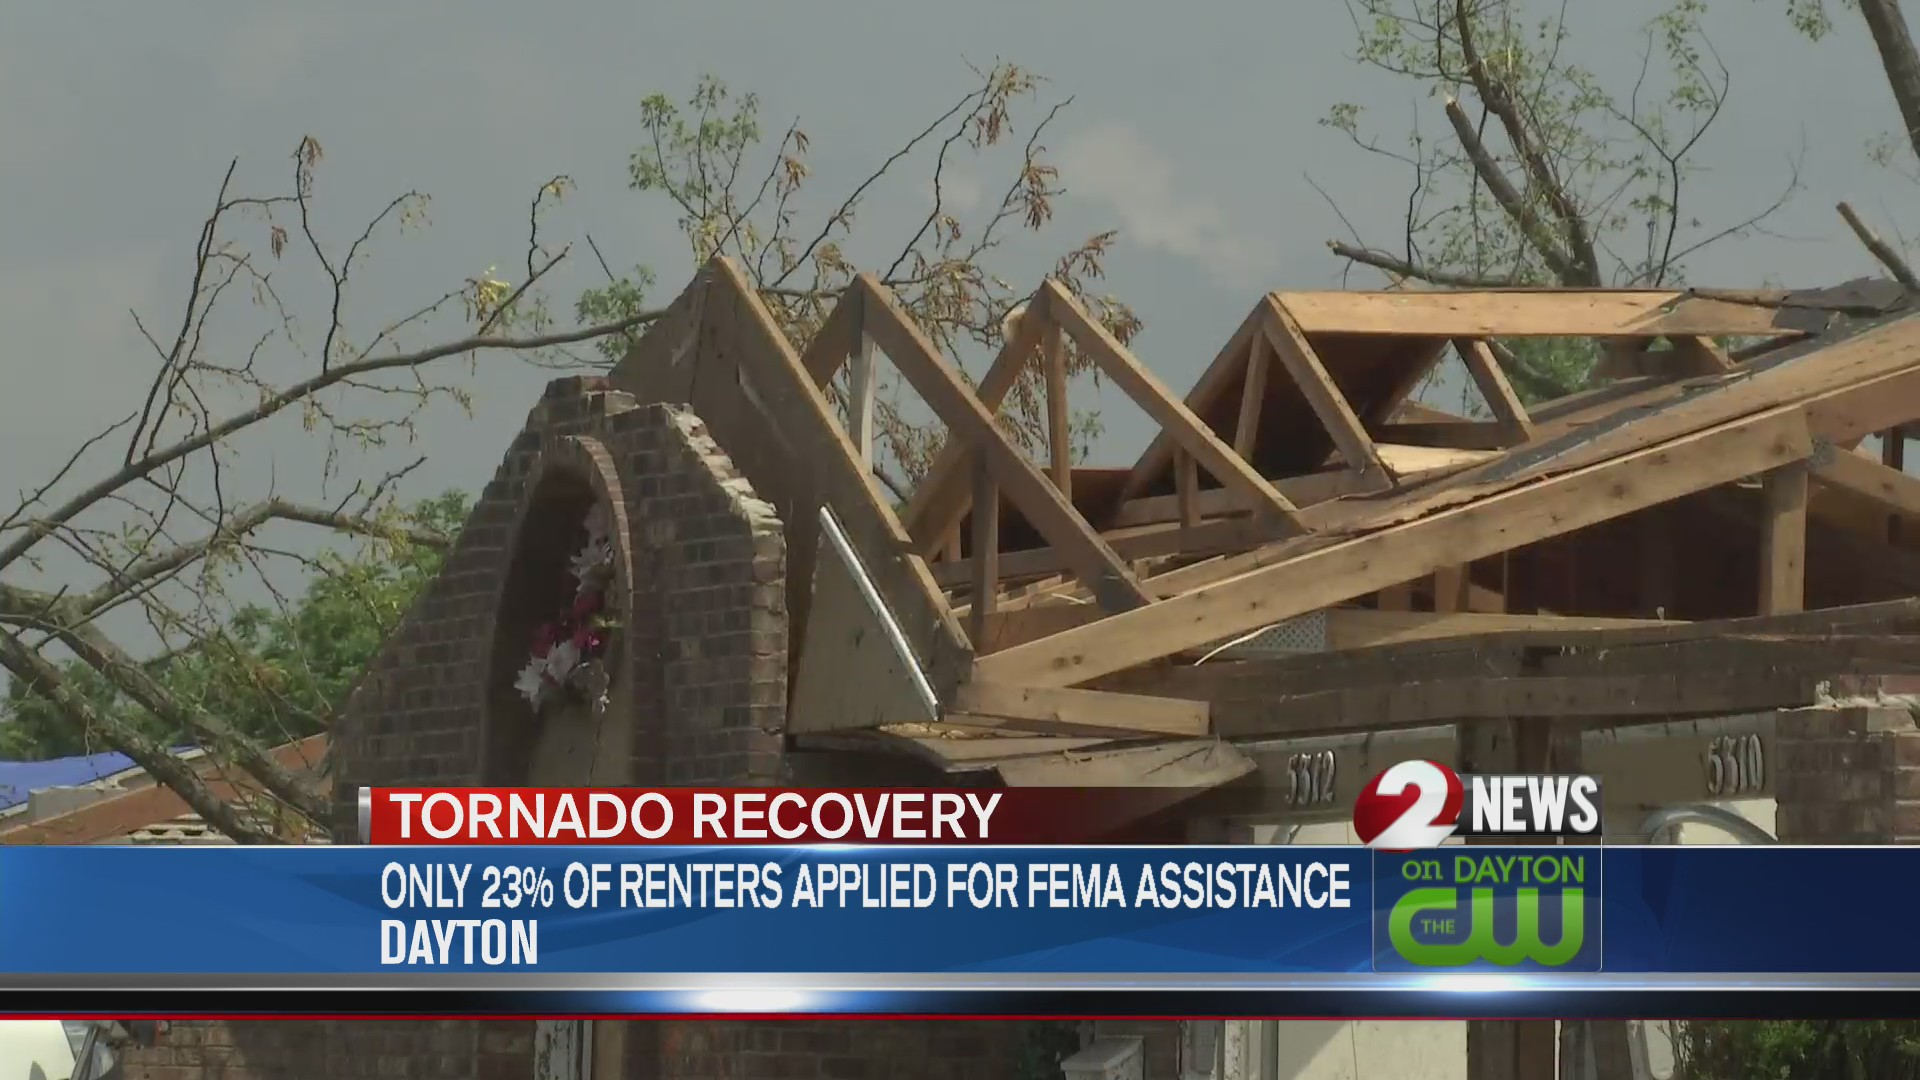 Tornado recovery aid left unclaimed 2 weeks before FEMA